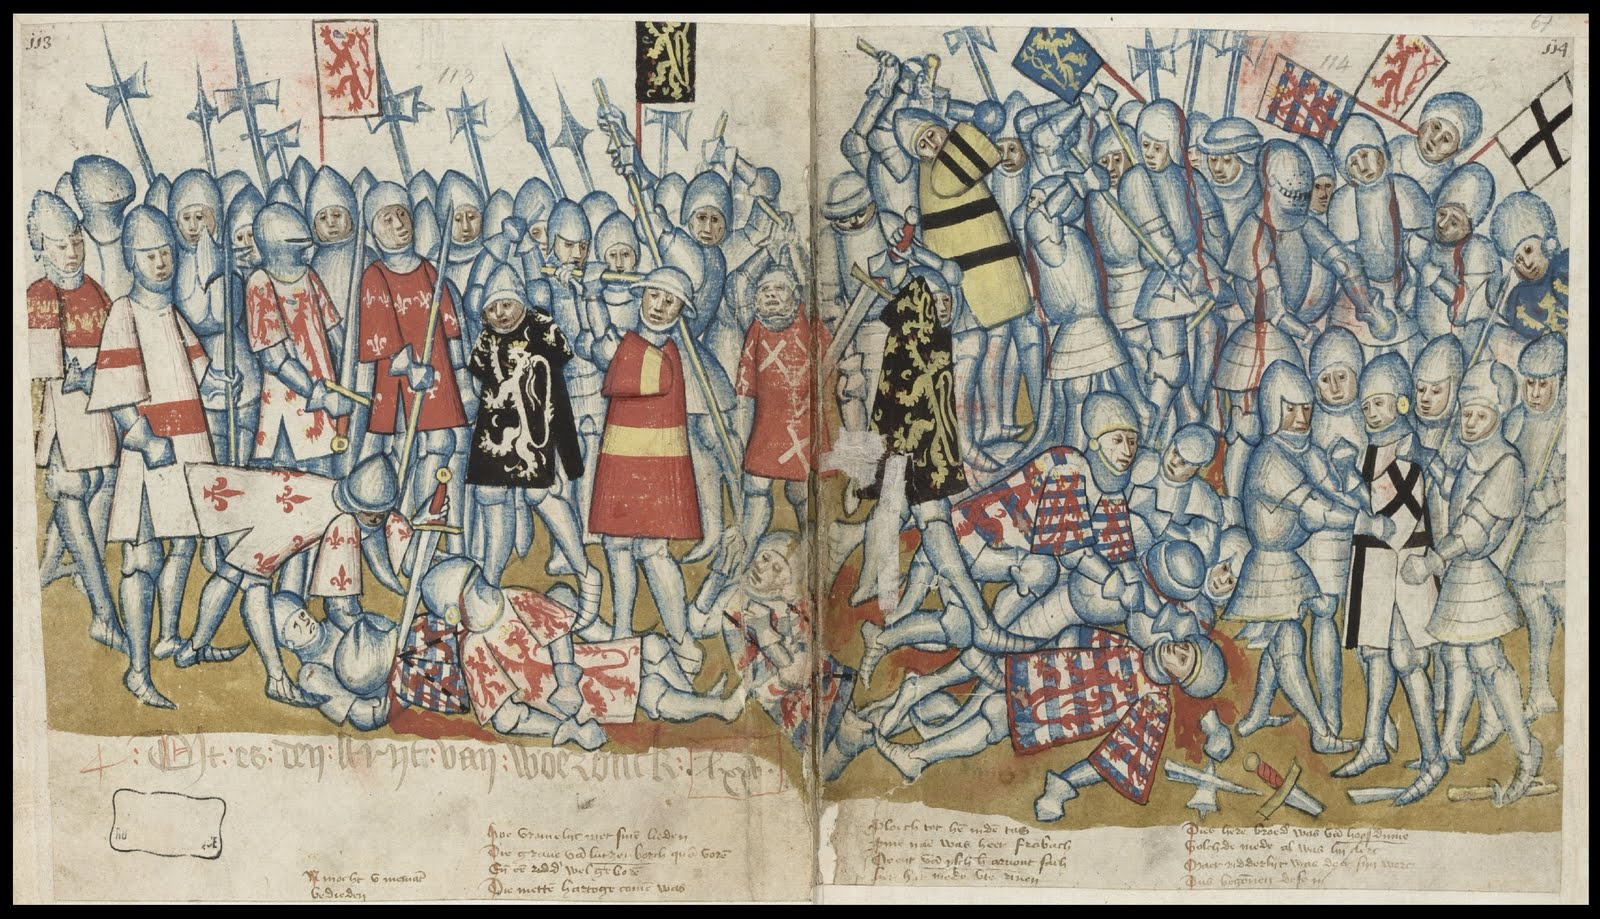 double-page battle scene from medieval brabant chronicle